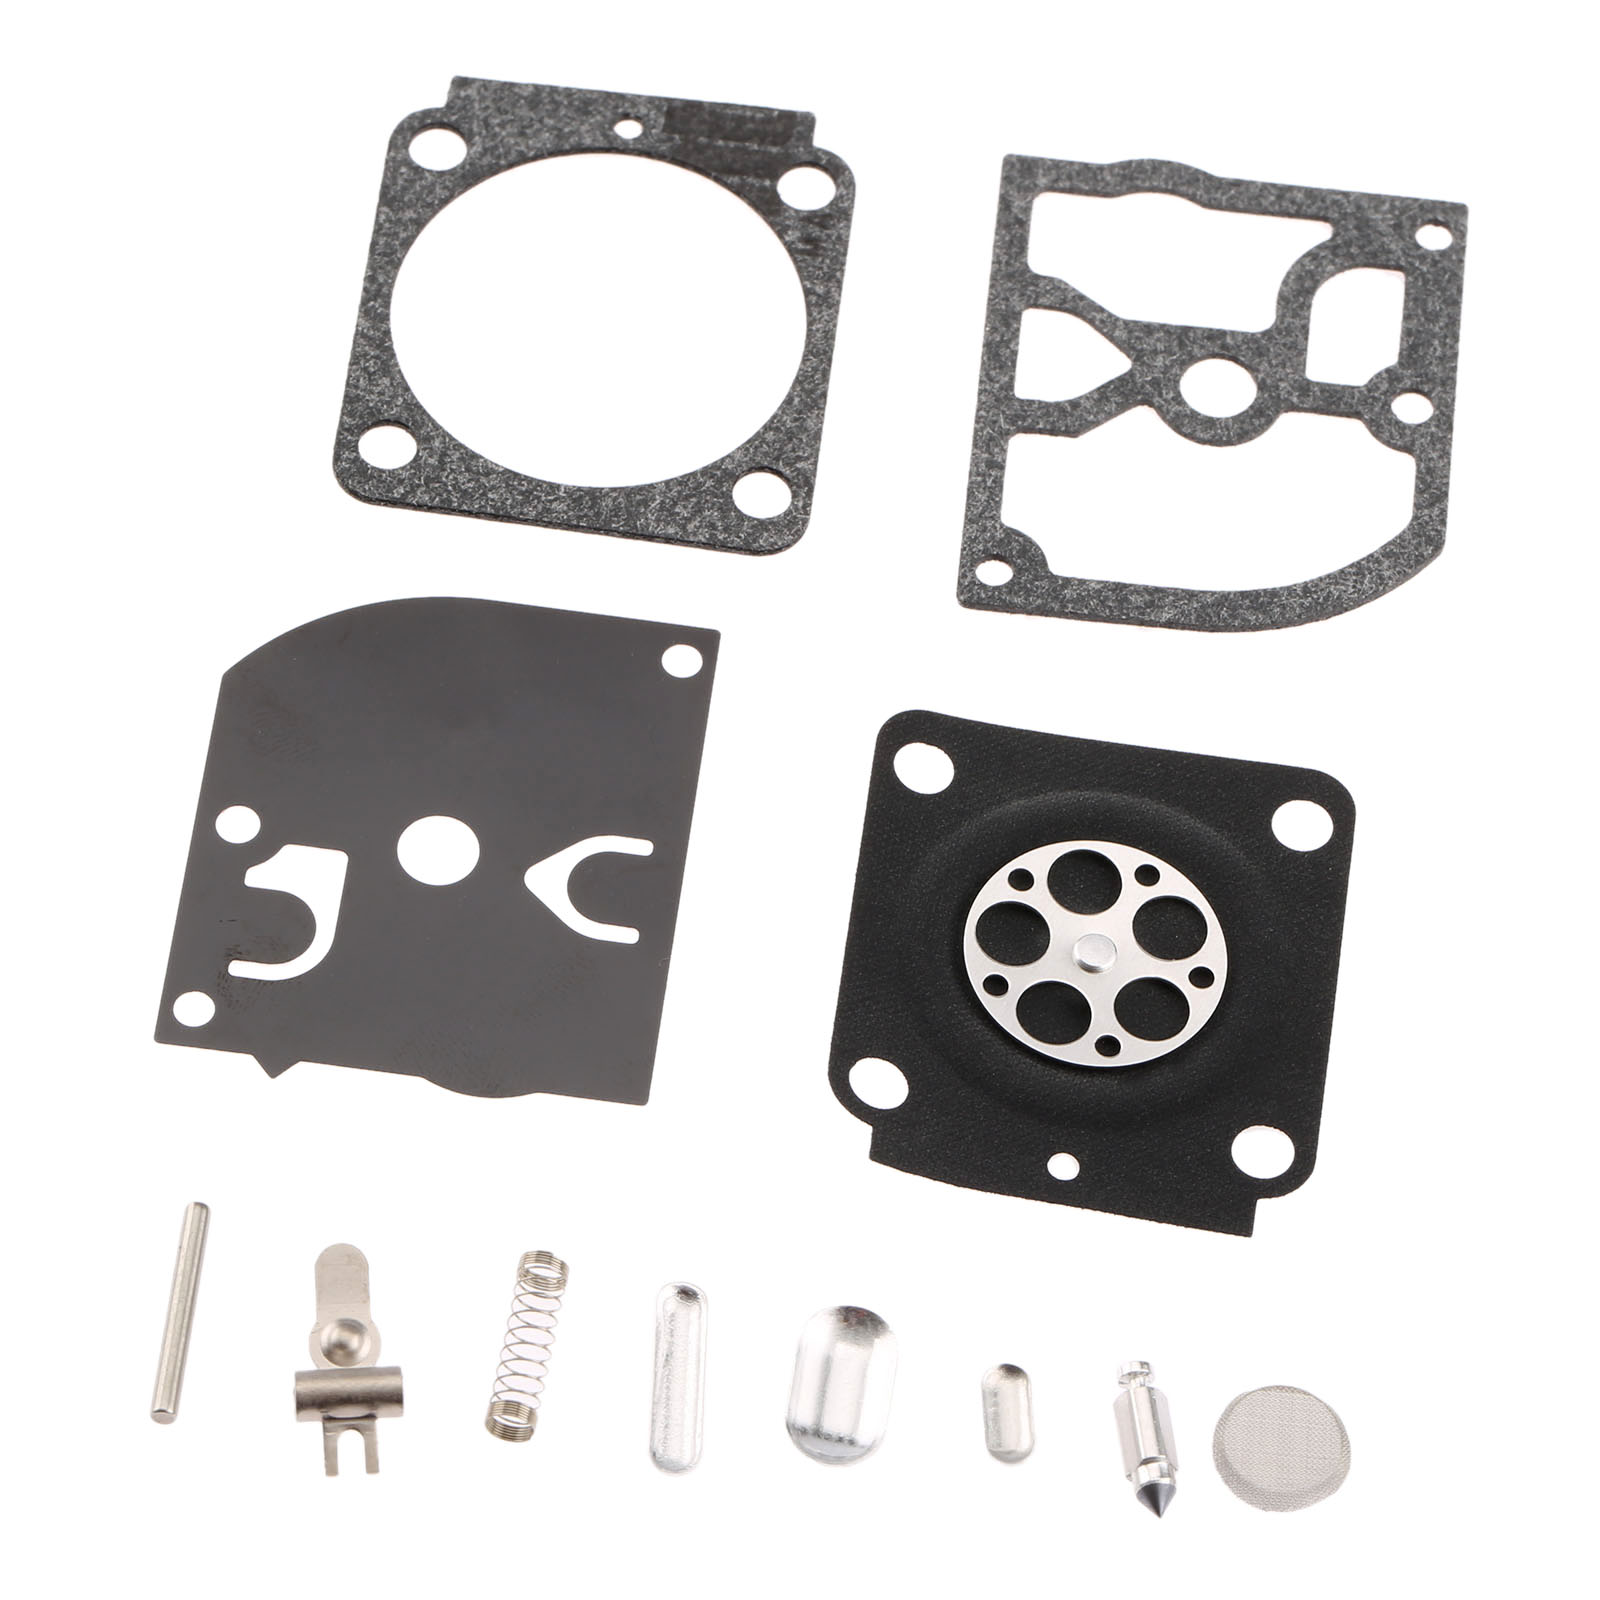 Carburetor Repair Kit Chainsaw Trimmer Parts RB-100 Gasket Diaphragm For Zama STIHL HS45 FS55 FS38 BG45 MM55 TILLER ZAMA C1Q 10pcs carburetor metering diaphragm assembly small engine carburetor metering diaphragm replaces zama a015053 trimmer